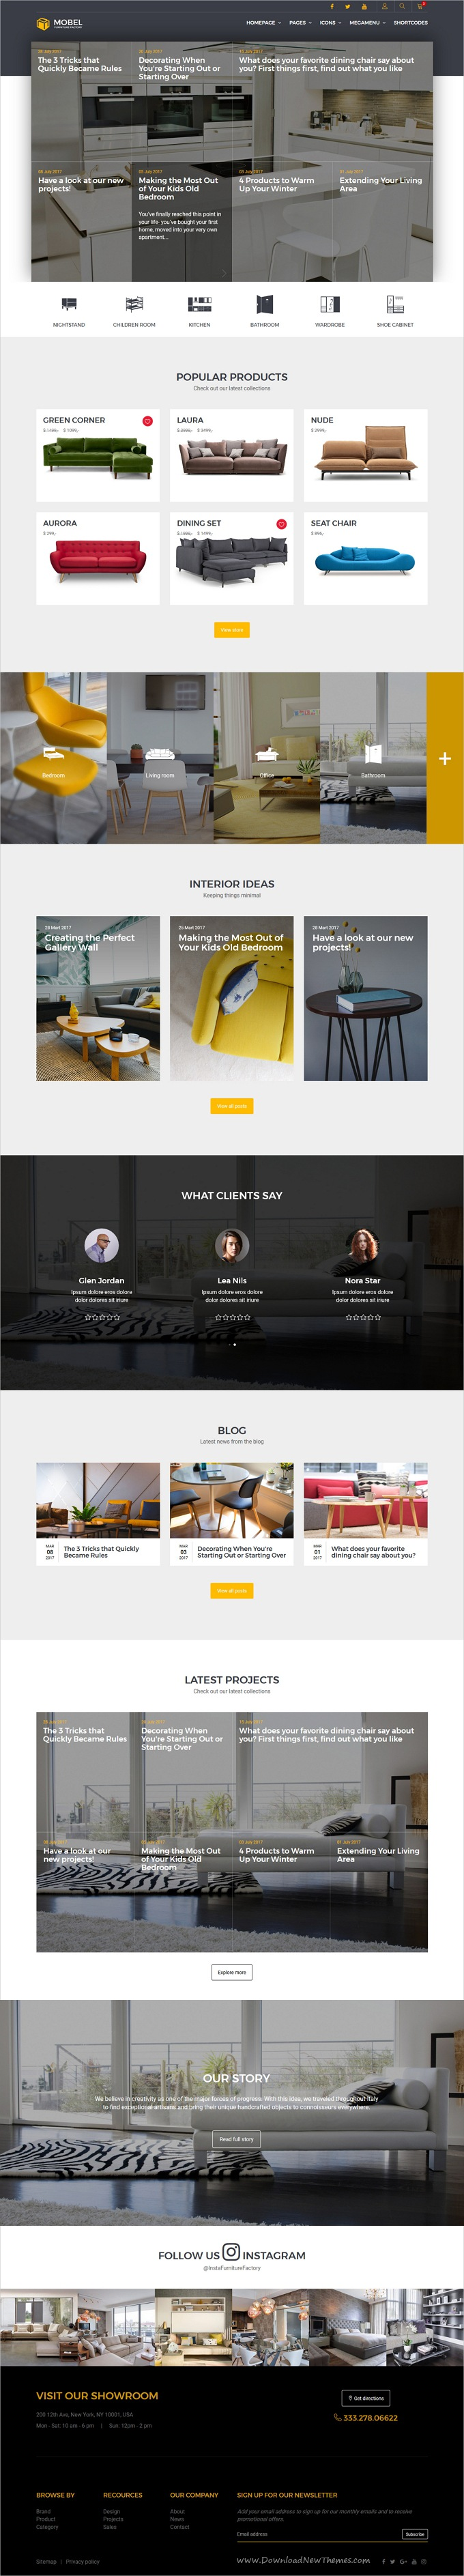 Mobel - Furniture HTML Template | Template, Website themes and Website